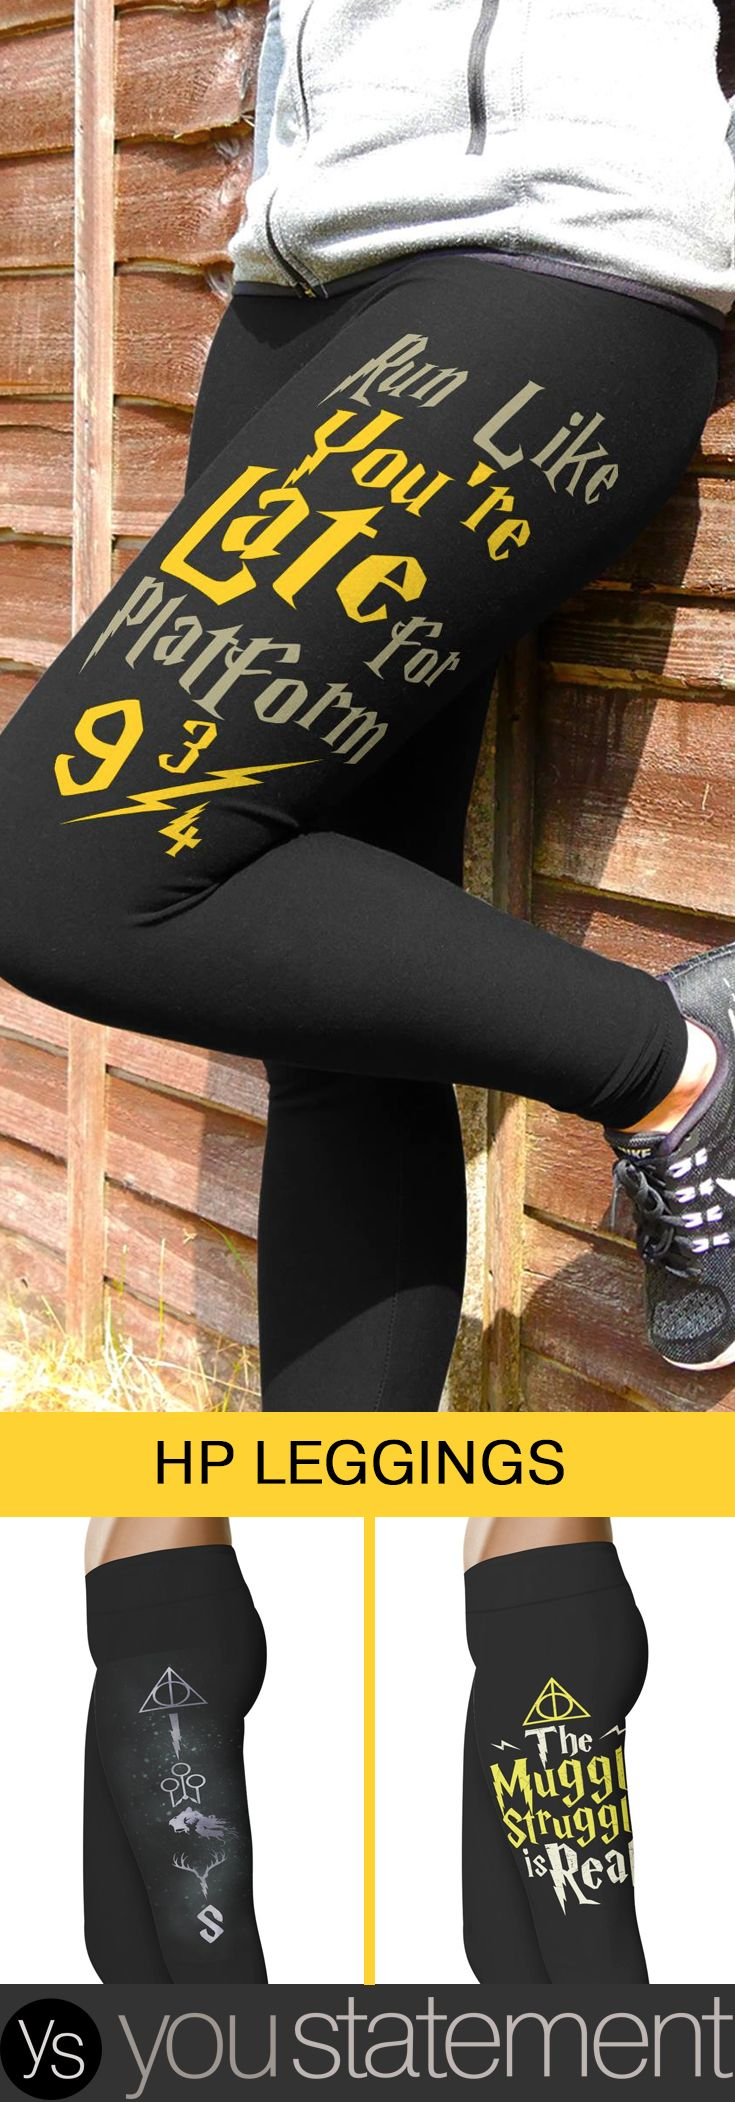 - Full Length, Womens Leggings. - Comfortable, Medium Rise, Flattering Finish - Suitable for Gym Use, out and about or simply around the house! - Superb breathability - these aren't a thick thermal co